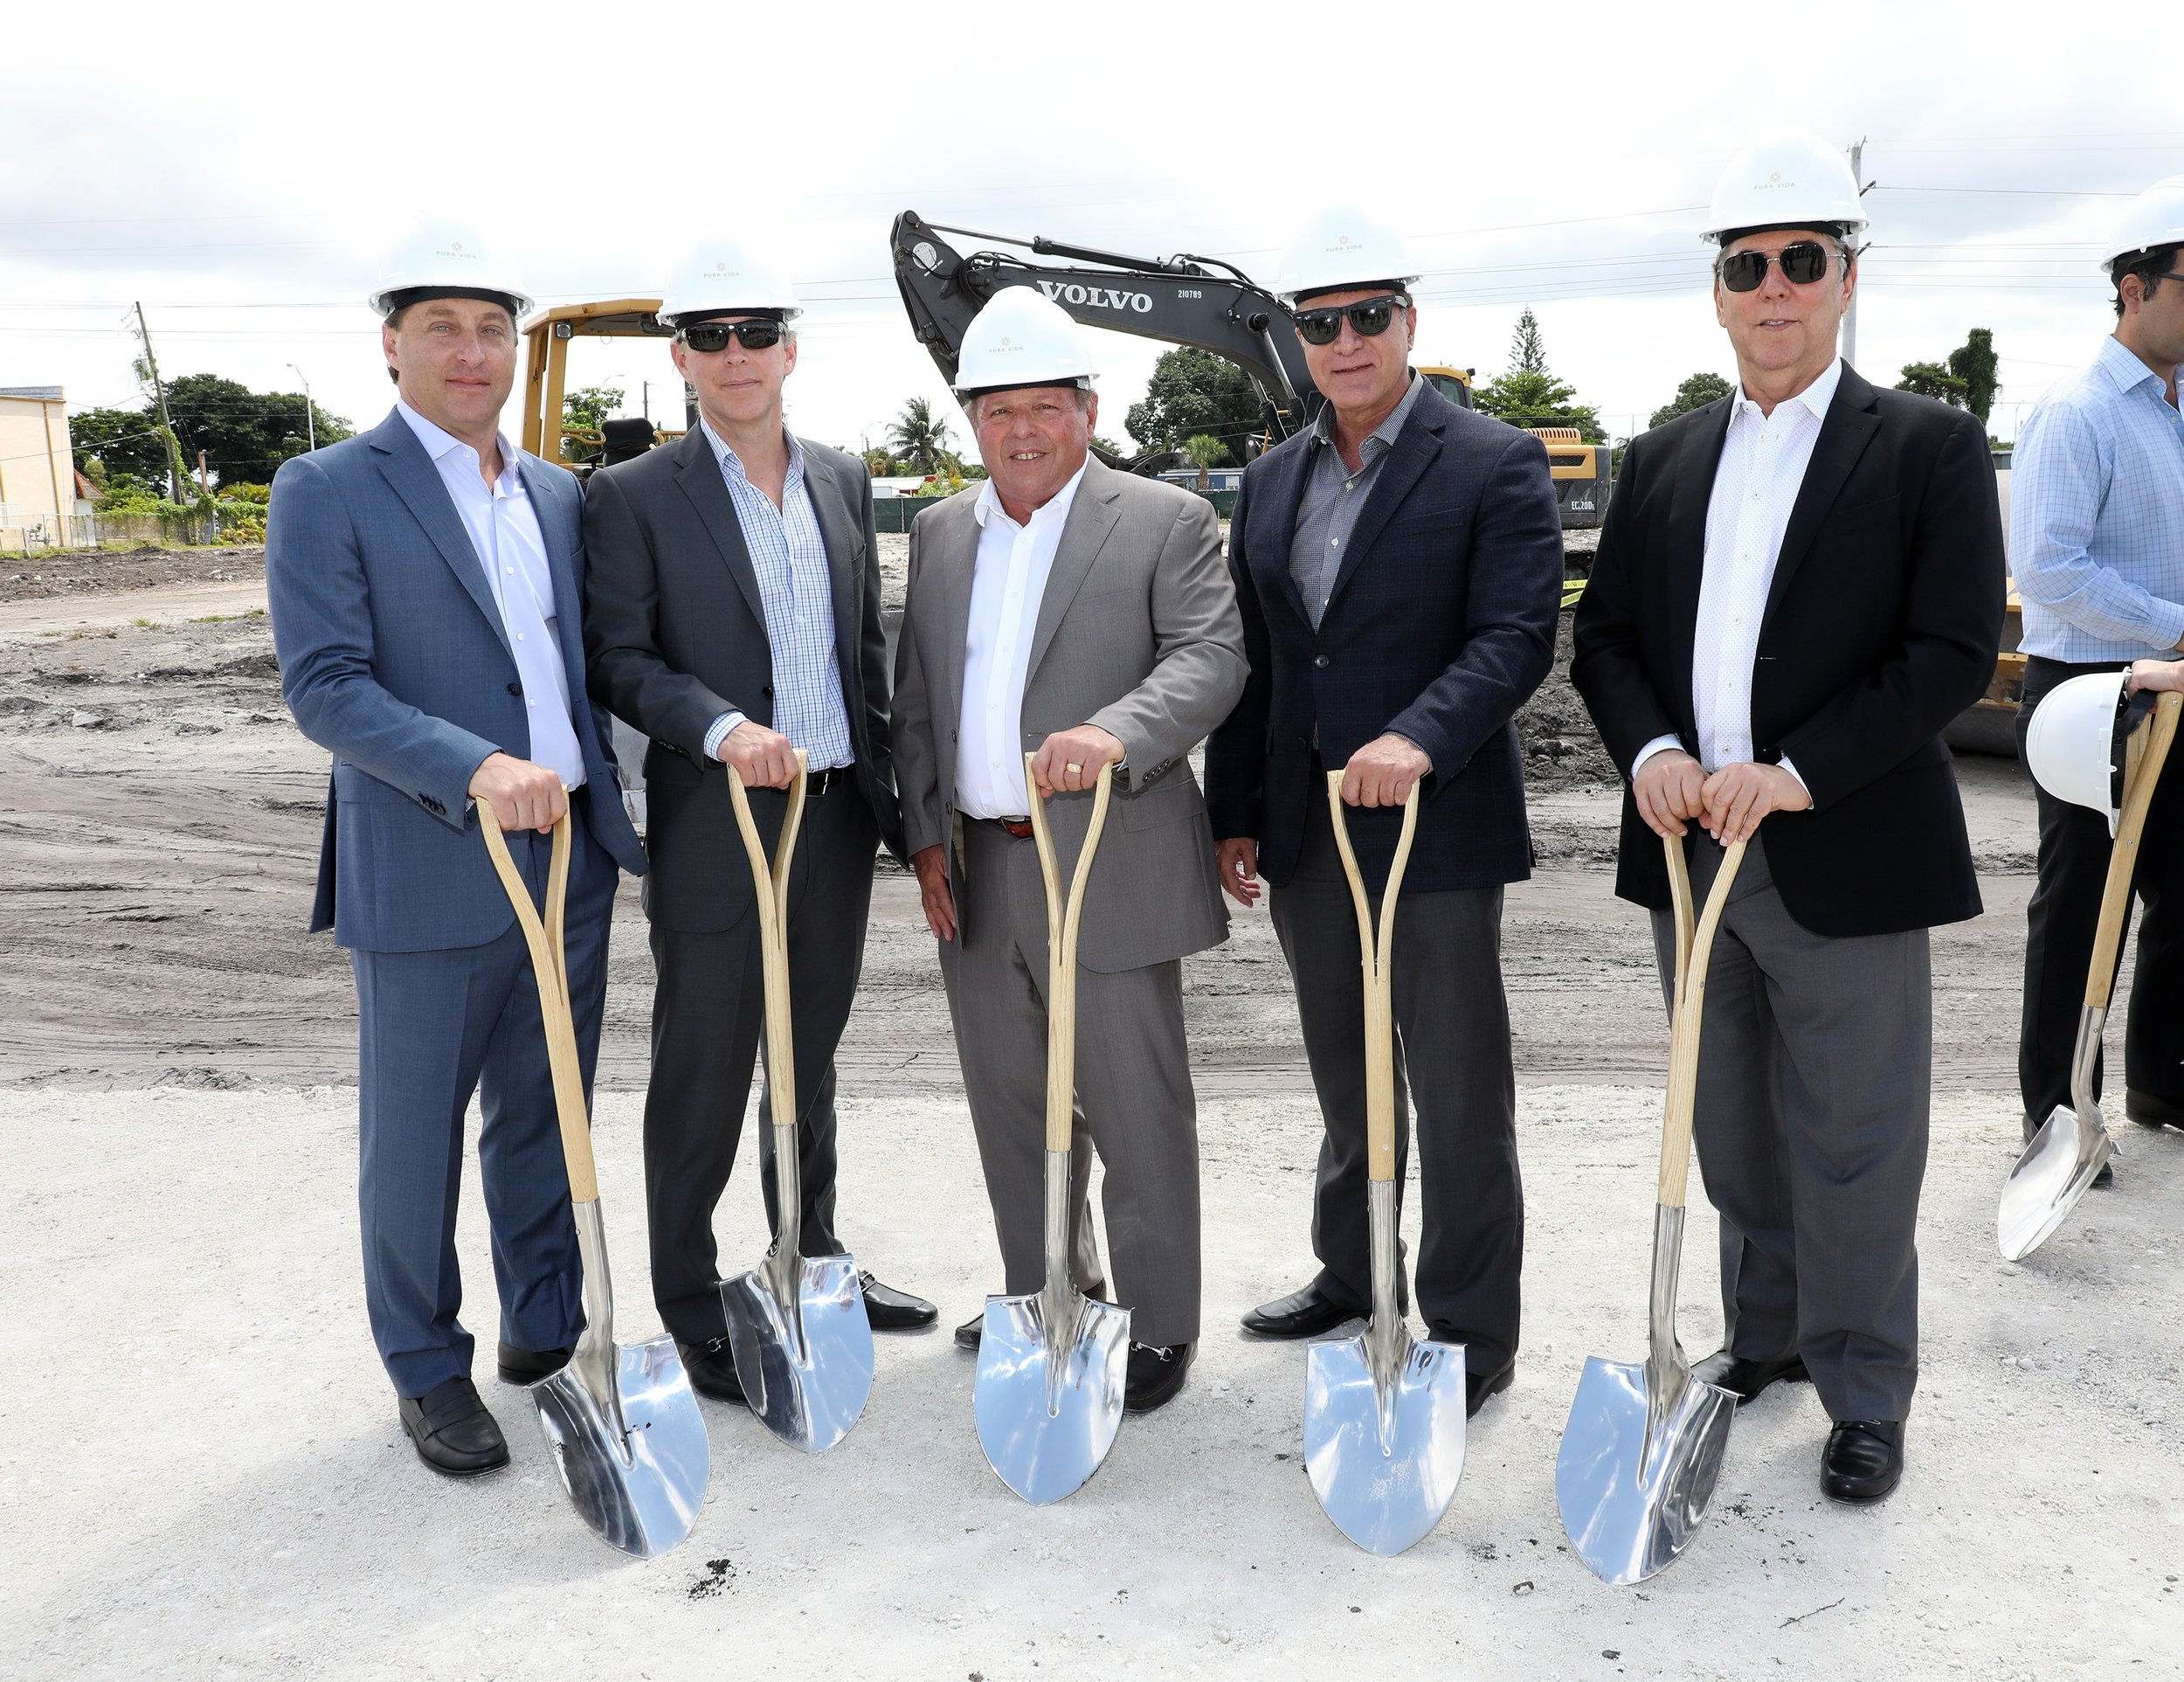 From L-R: David Brown, Principal of Coral Rock Development Group; Victor Brown, Principal of Coral Rock Development Group; Michael Wohl, Principal of Coral Rock Development Group; City of Hialeah Mayor Carlos Hernandez; Stephen A. Blumenthal, Principal of Coral Rock Development Group